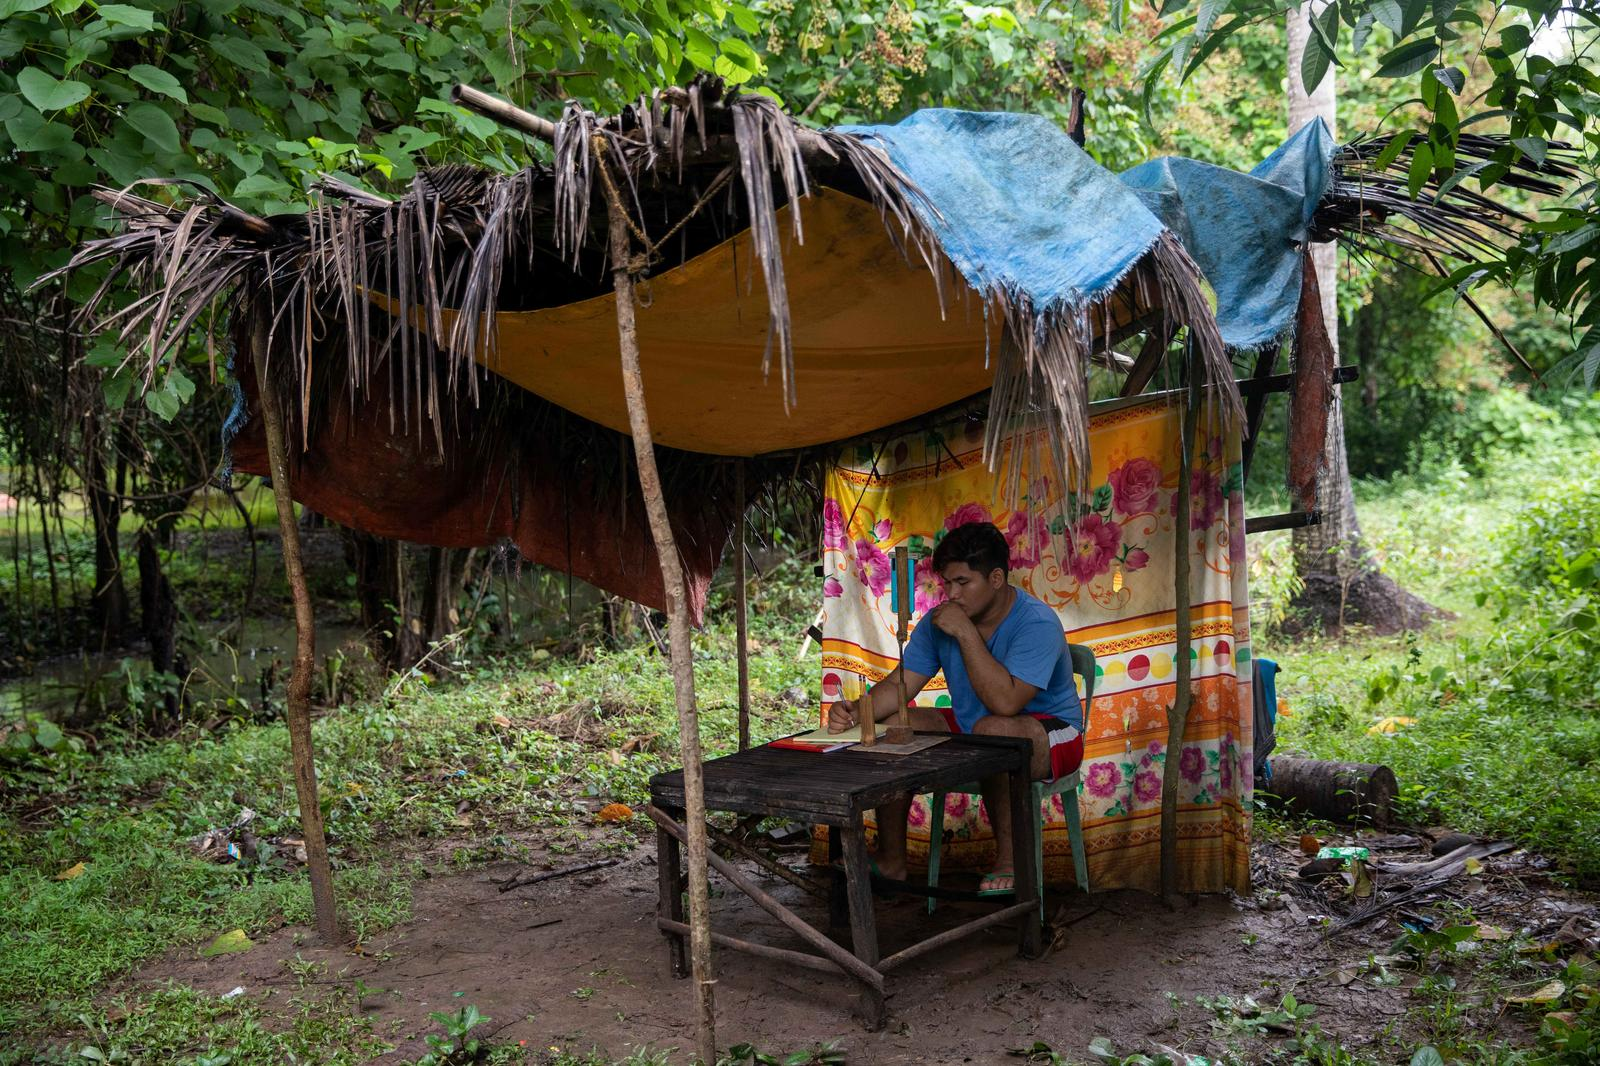 Mark Joseph Andal, 18, a college student, takes part in an online class through a smartphone at a forest hut where there is internet connection, following the suspension of physical classes during the coronavirus disease (COVID-19) outbreak, in Mabalanoy, San Juan, Batangas, Philippines October 15, 2020. Andal has taken a part-time job in construction to purchase a smartphone for virtual classes and has also built a forest shelter to capture an internet signal. When the signal fades, Andal picks up his plastic chair to move to another spot, and if it rains, he holds the phone in one hand and an umbrella in the other. 'We're not rich, and finishing school is my only way to repay my parents for raising me.' Photo: Reuters